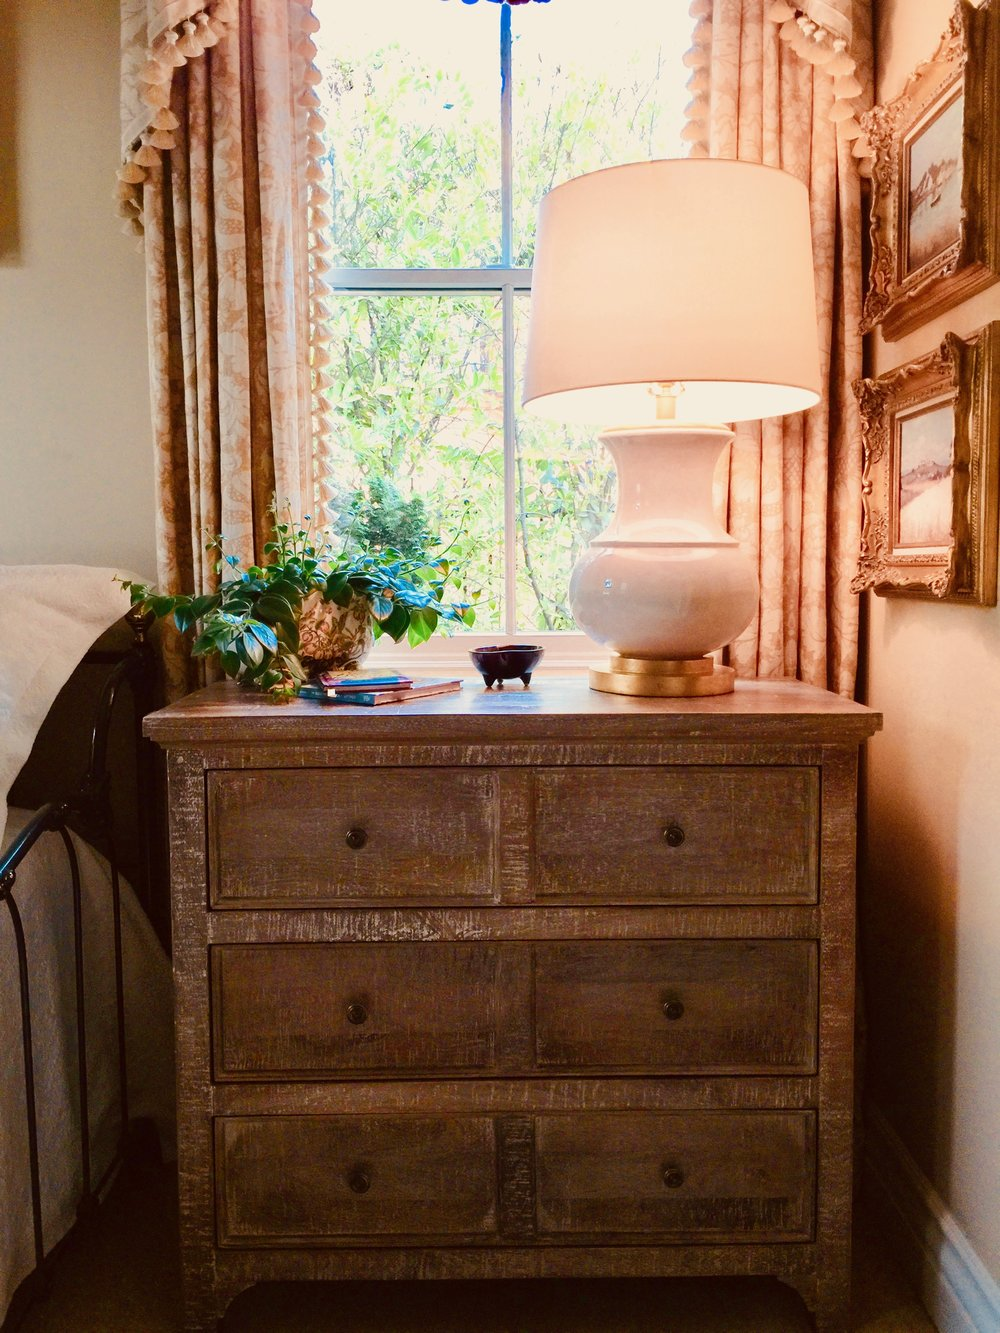 Pottery Barn Thalia dresser and Deauville lamp from Circa Lighting